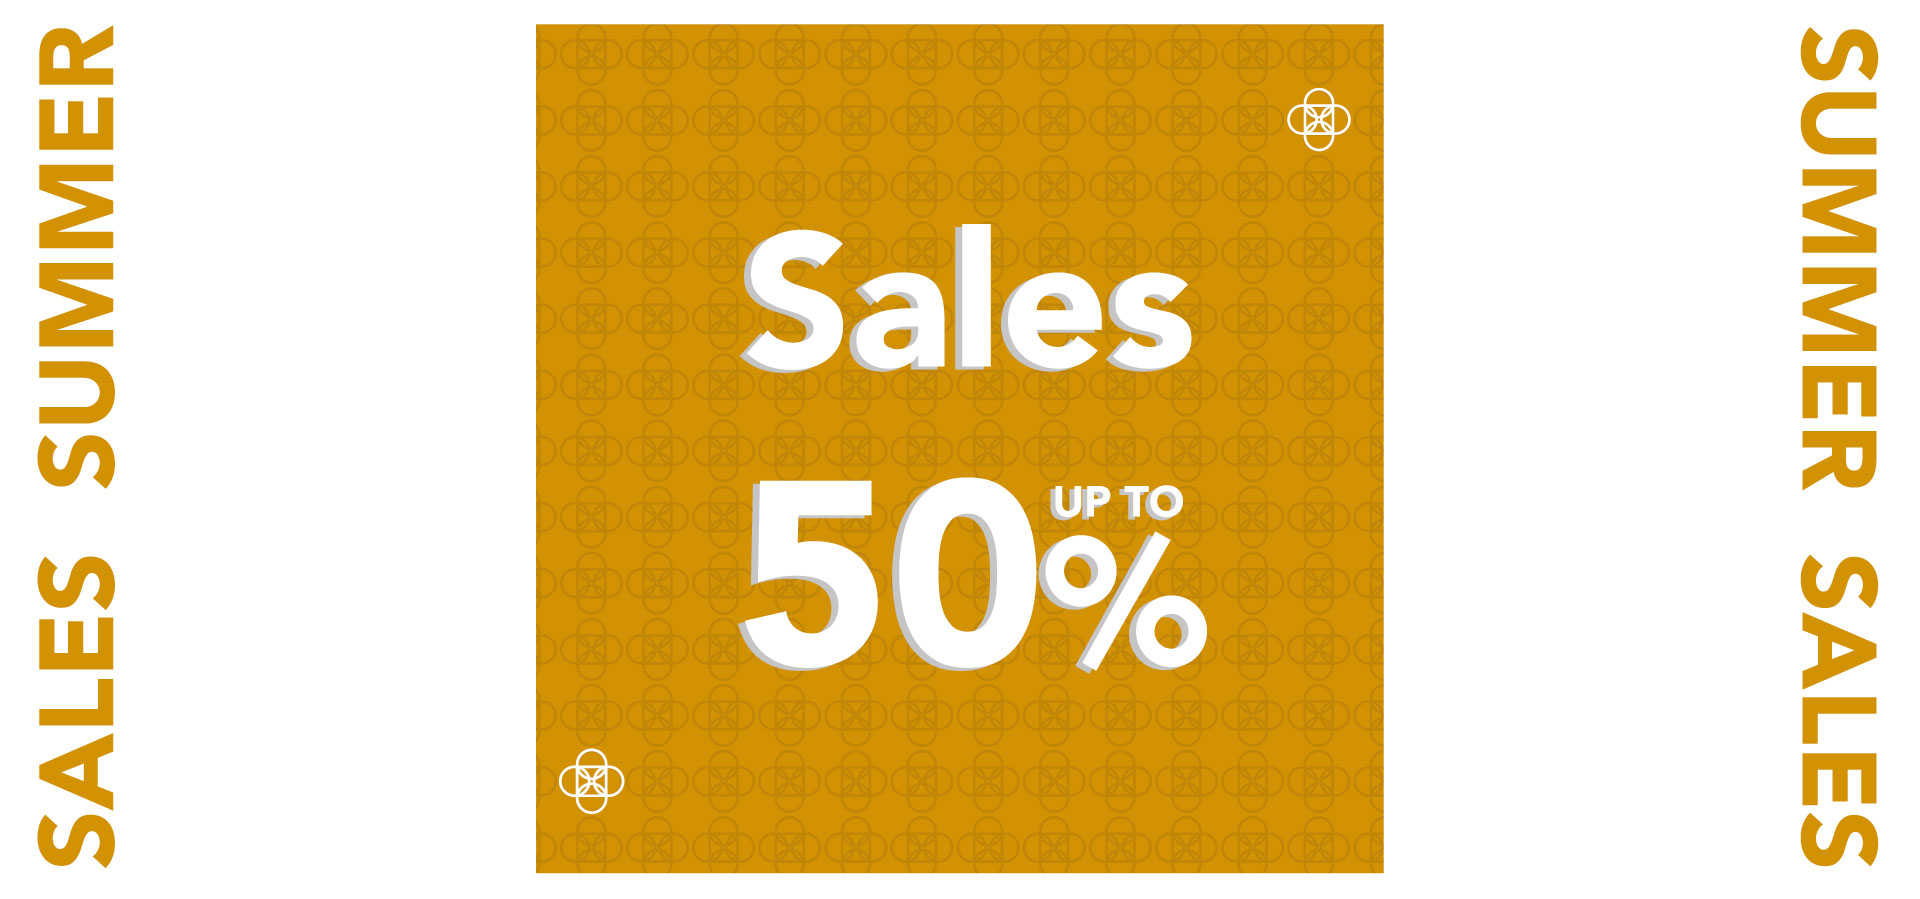 Sunglasses Sales 2021   Up to 50%